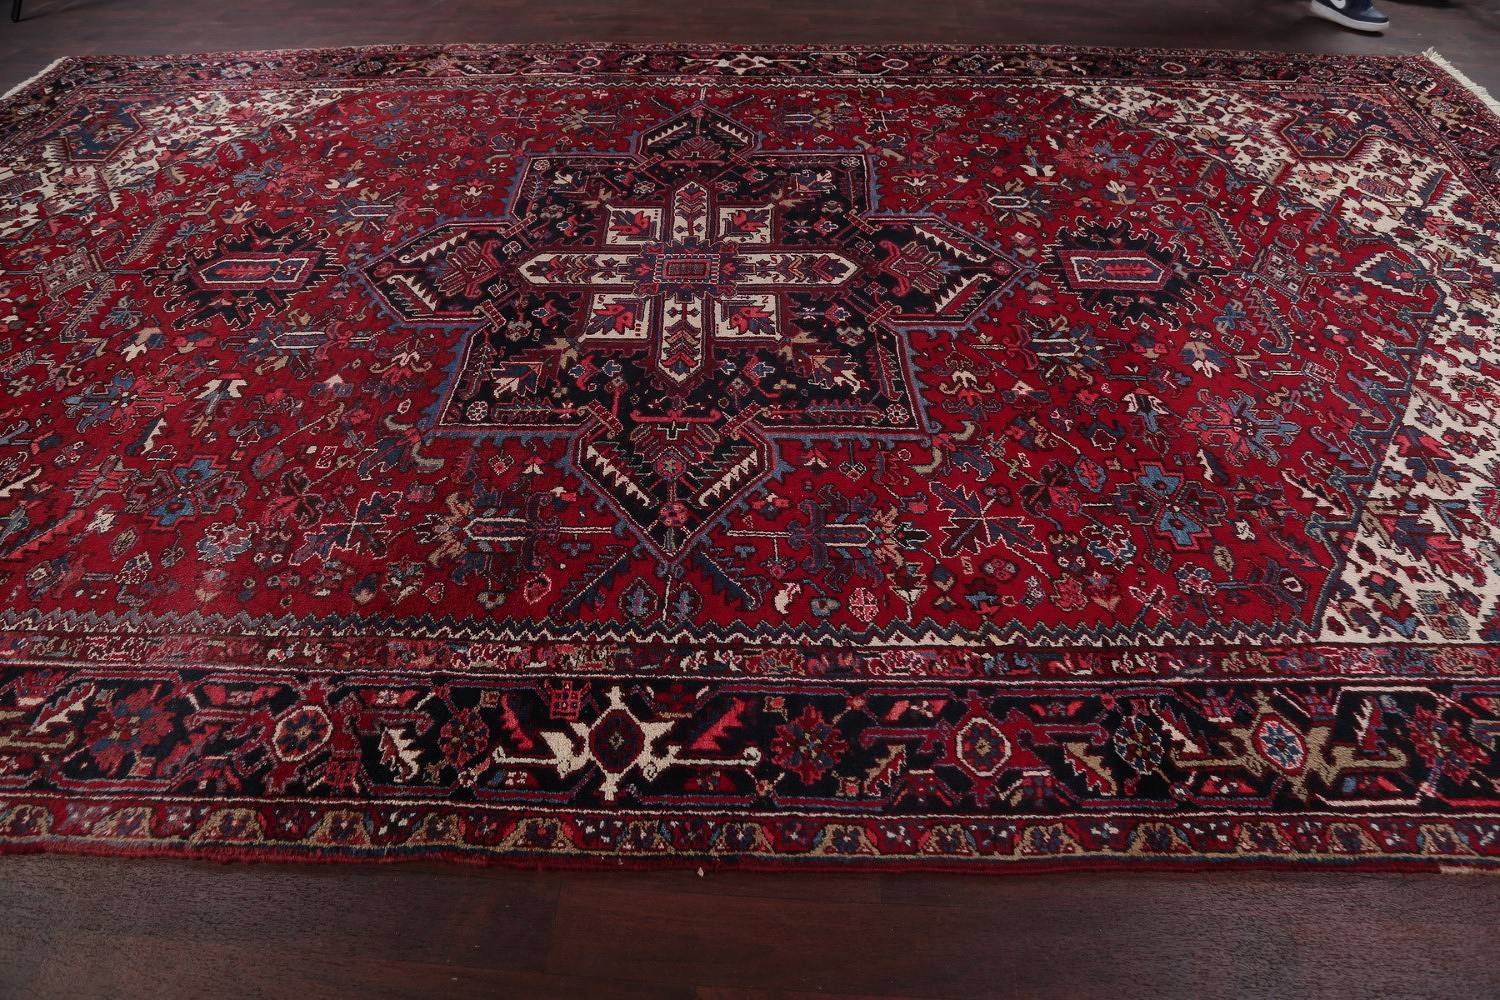 Mansion Vintage Geometric Red Heriz Persian Hand-Knotted Area Rug 10x16